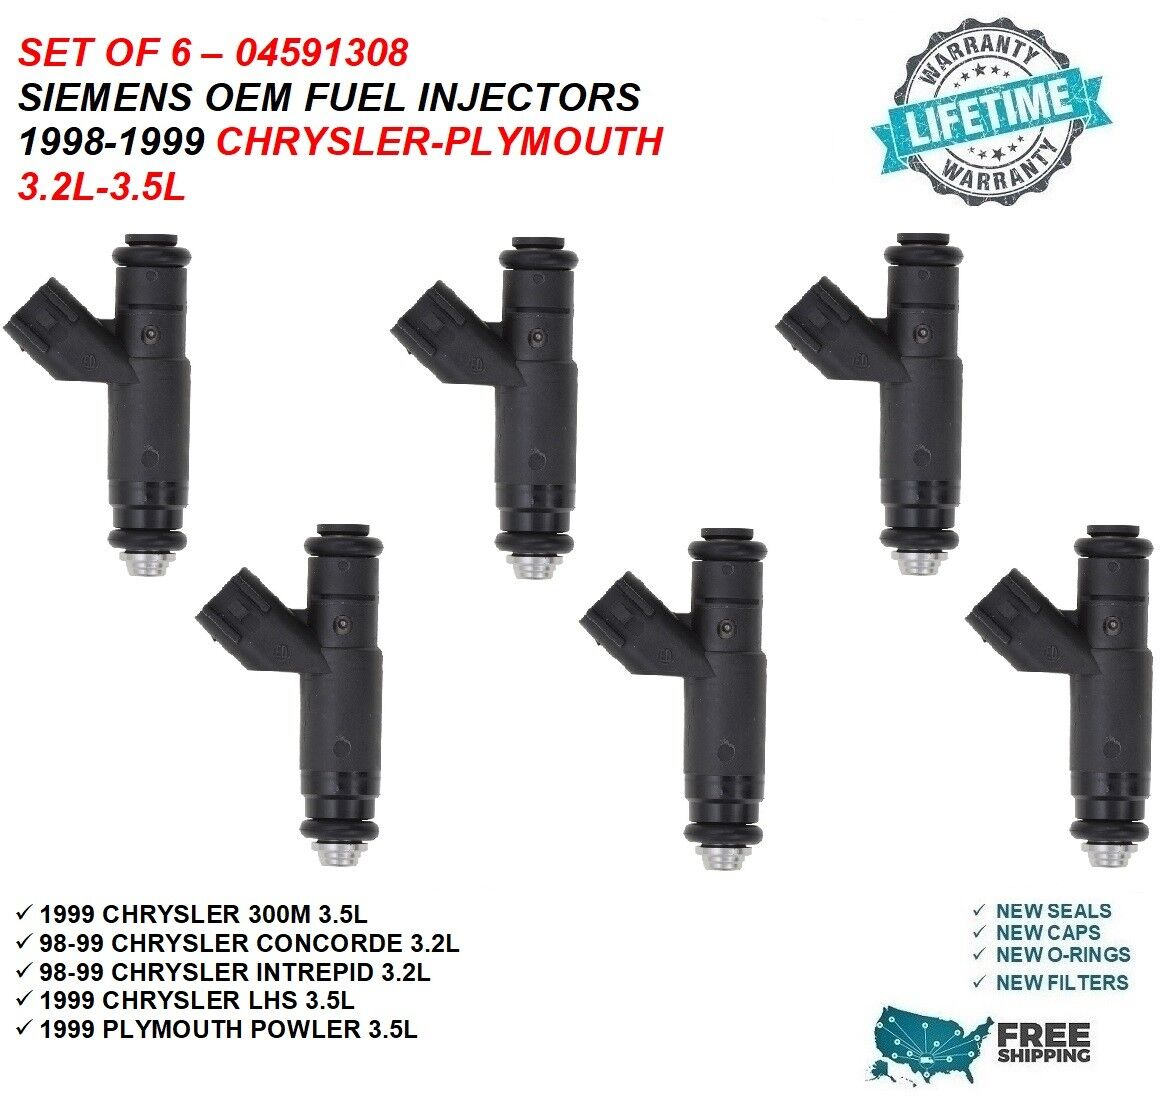 Genuine Siemens Set Of 6 Fuel Injectors For Plymouth Dodge Chrysler 3.2L 3.5L